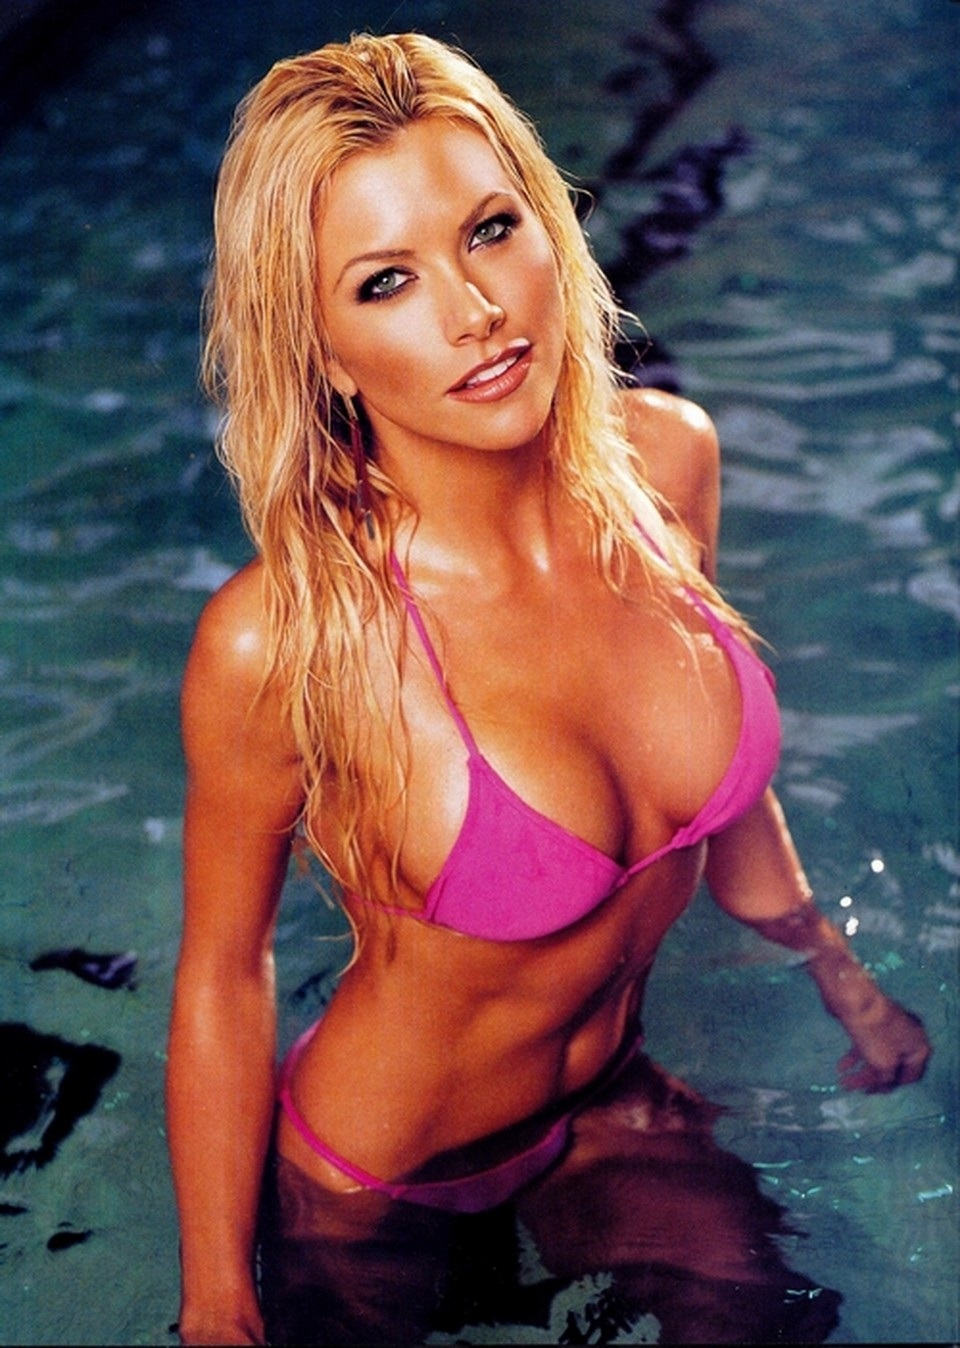 Bikini Charissa Thompson nudes (32 foto and video), Topless, Hot, Selfie, lingerie 2006